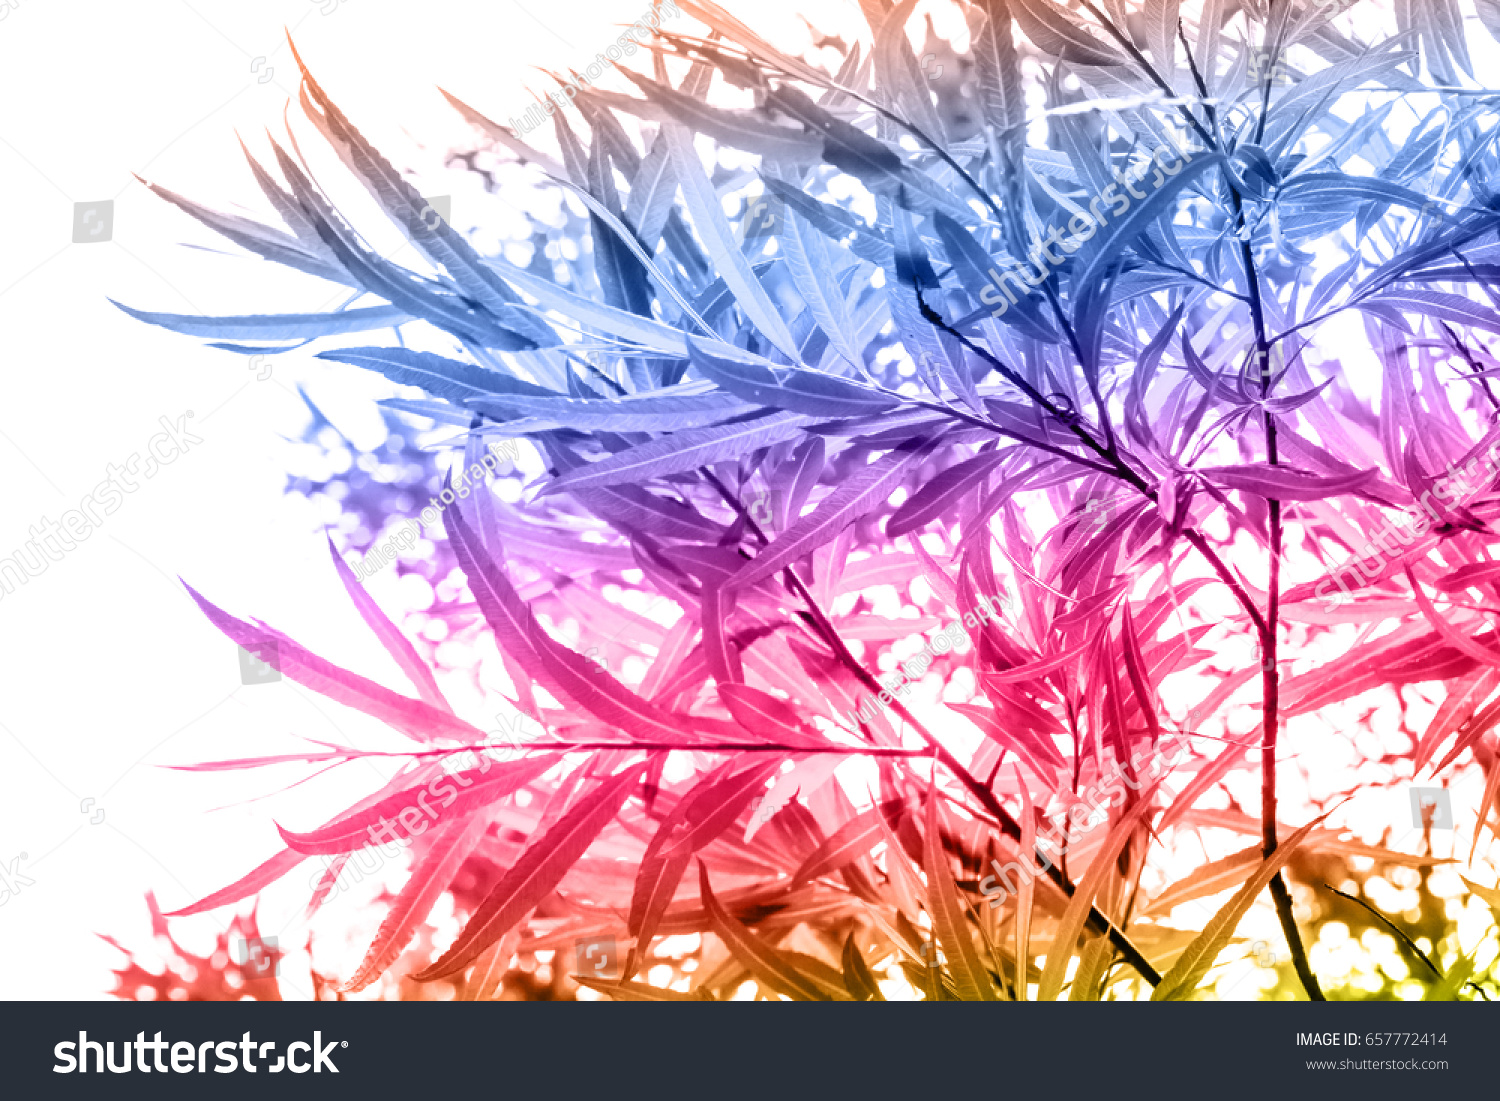 Bamboo Plants Colorful Artistic Background Stock Illustration ...